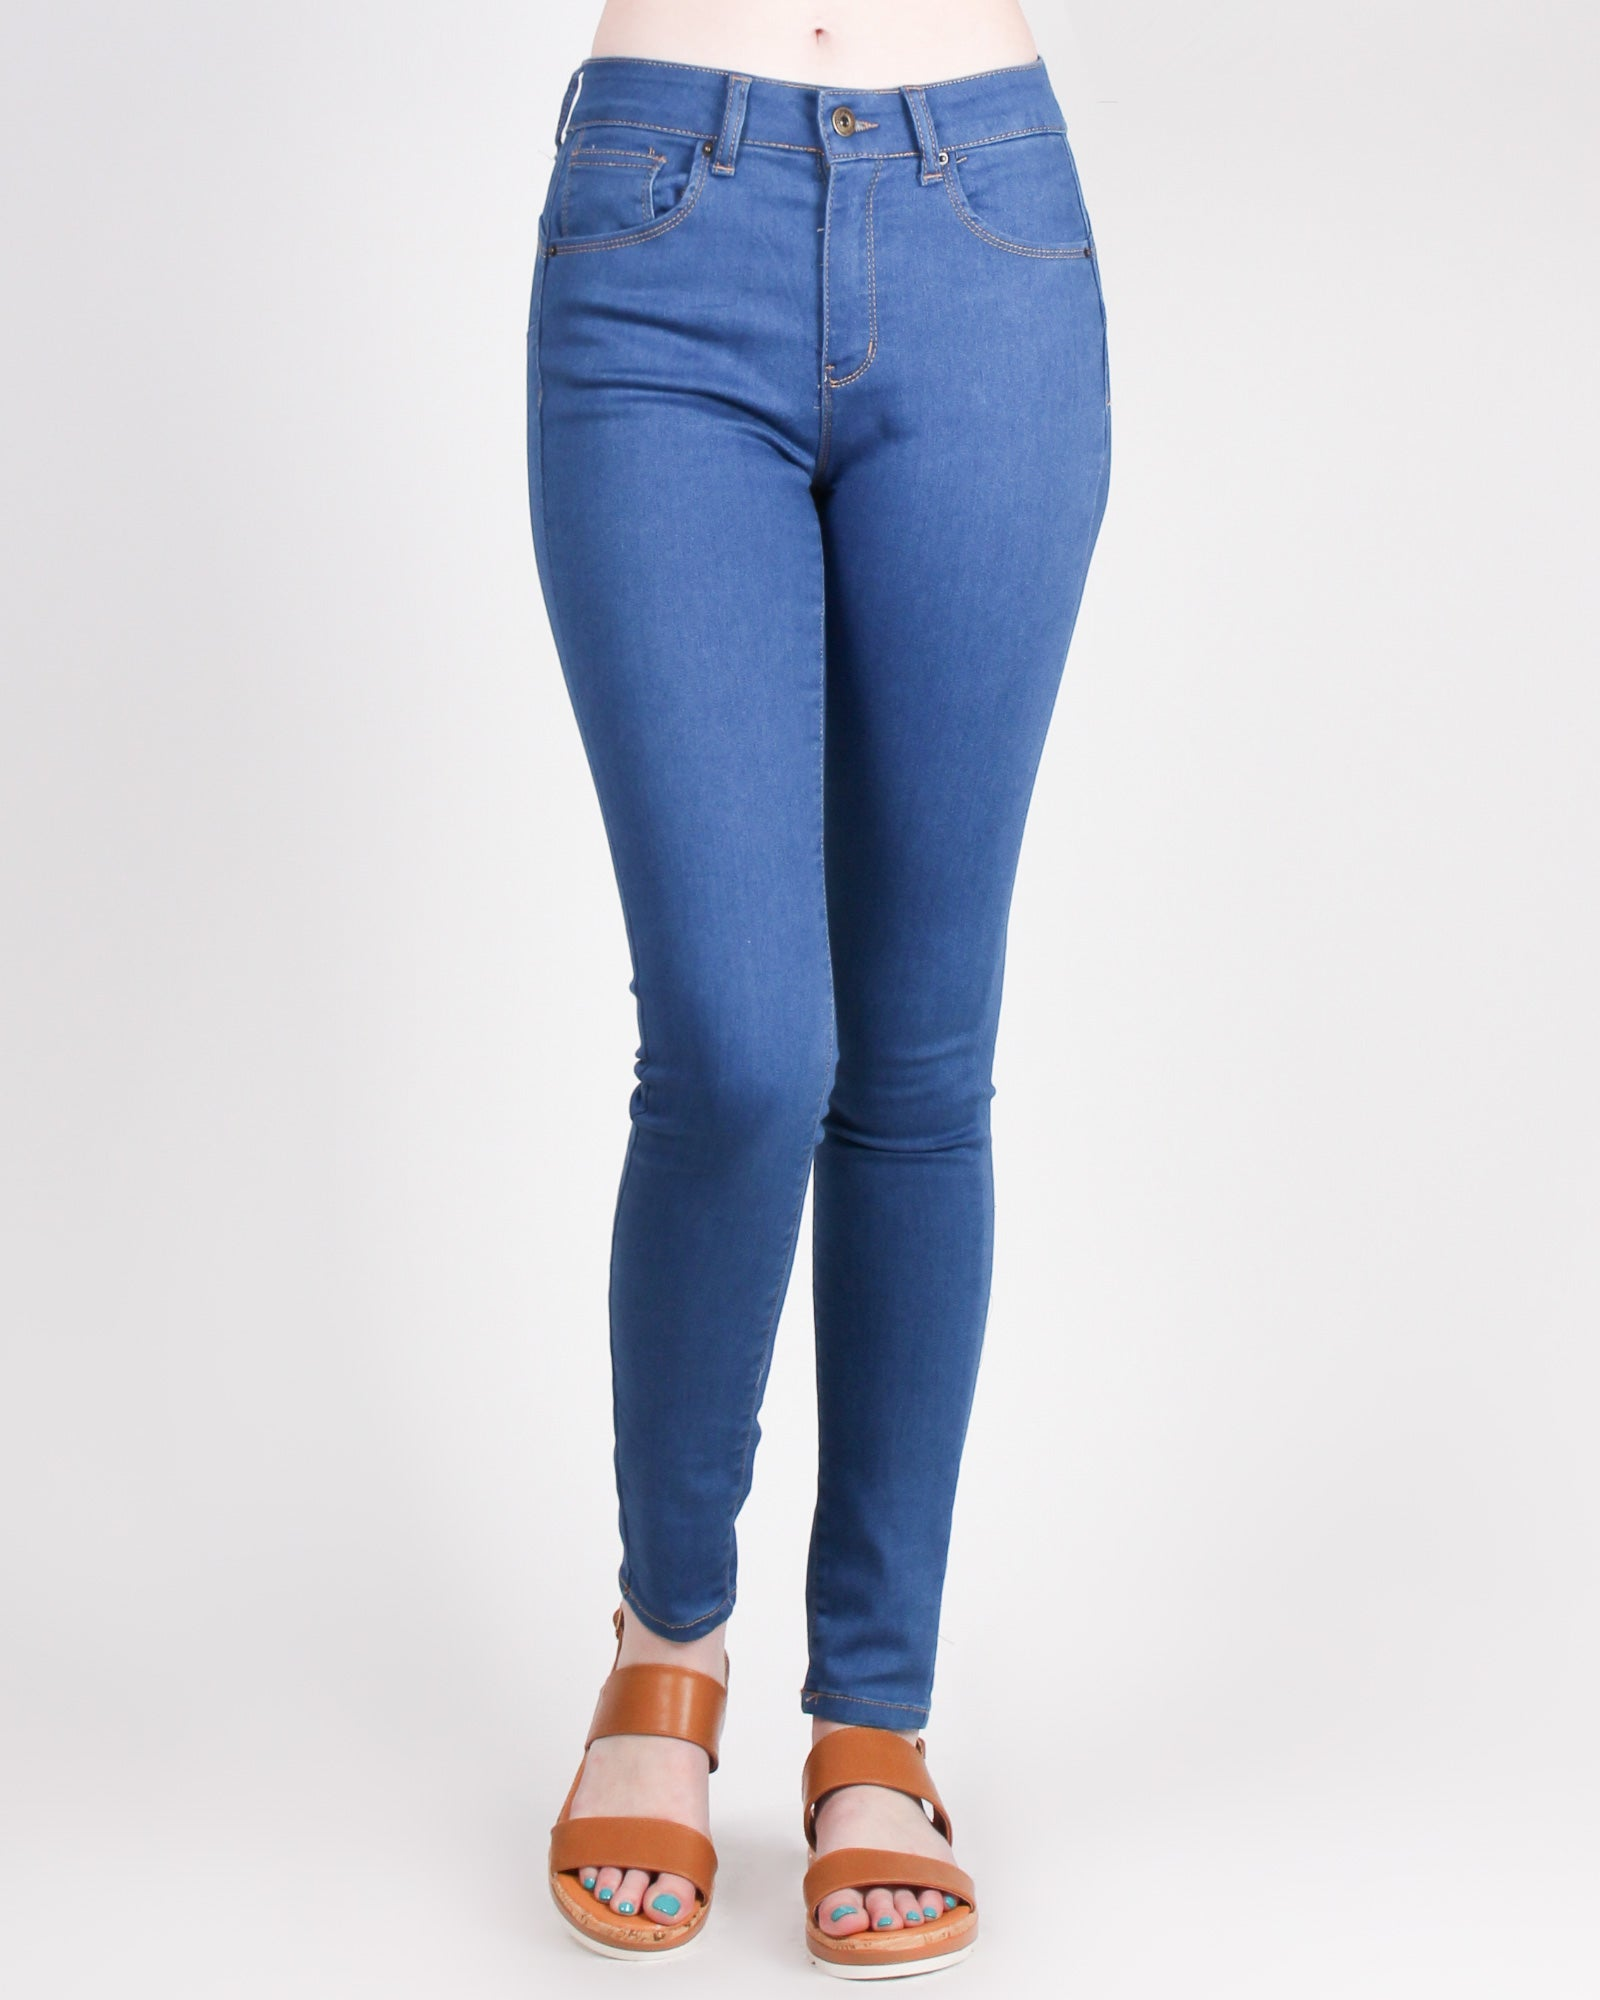 Drive Me Crazy Skinny Jeans (Medium)